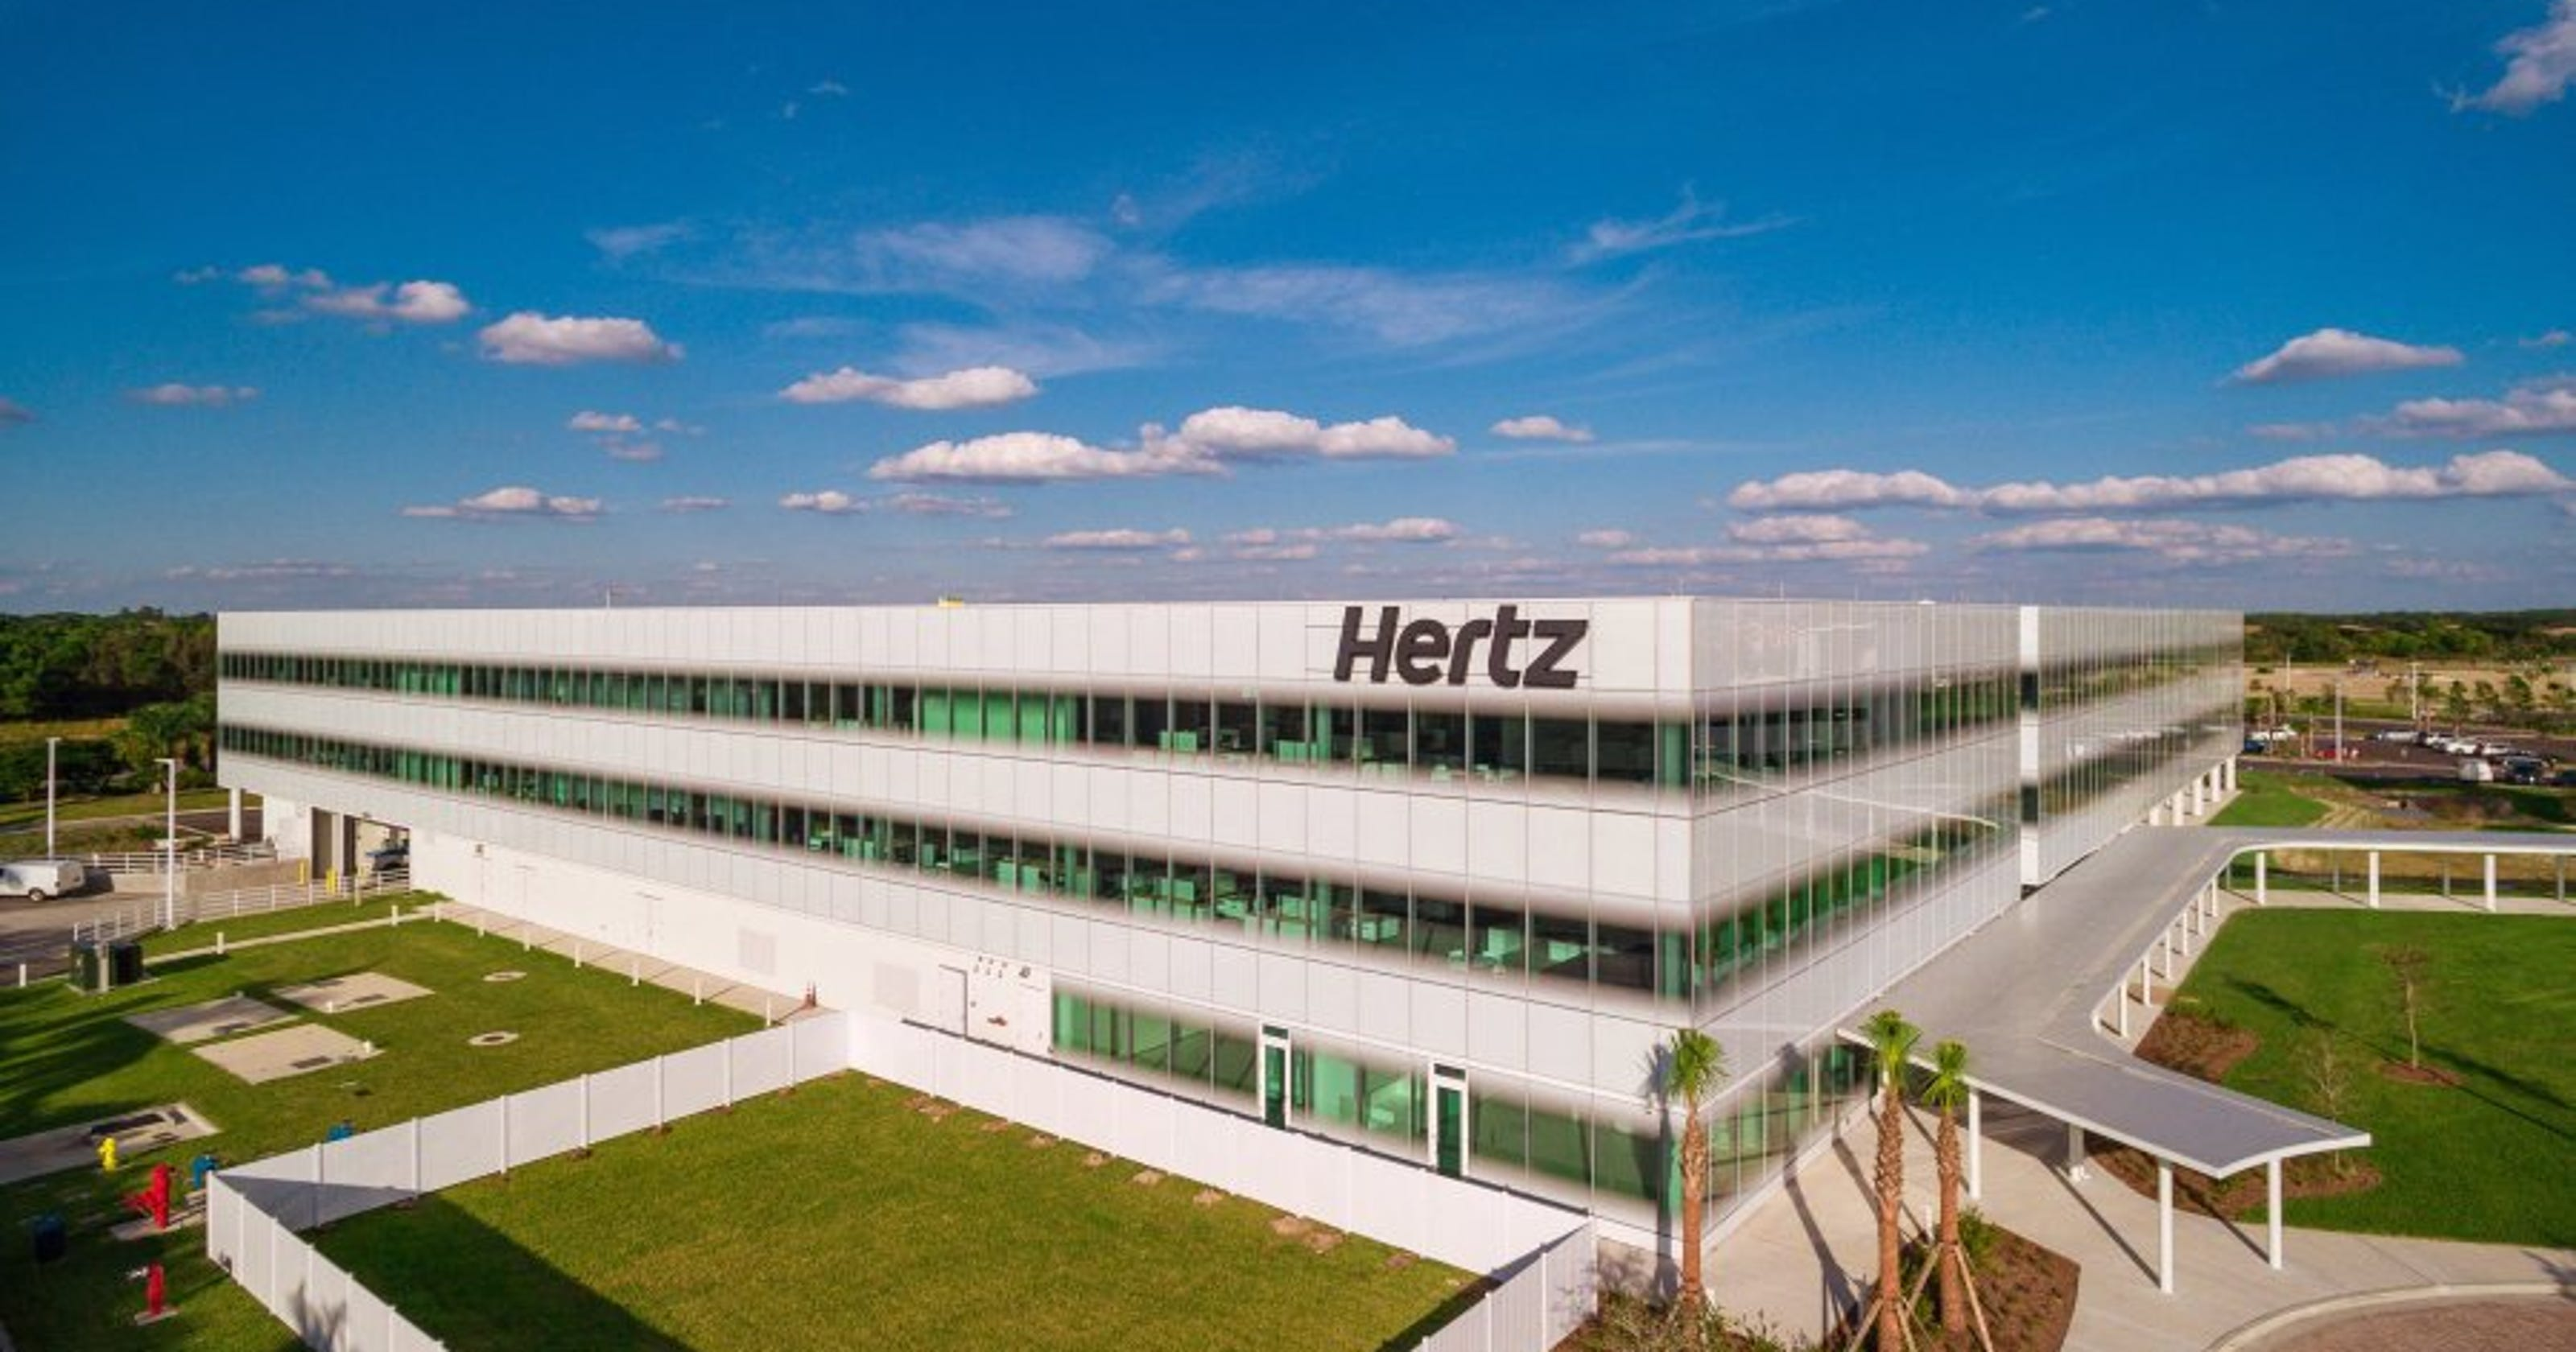 Hertz spins off equipment rental as Herc